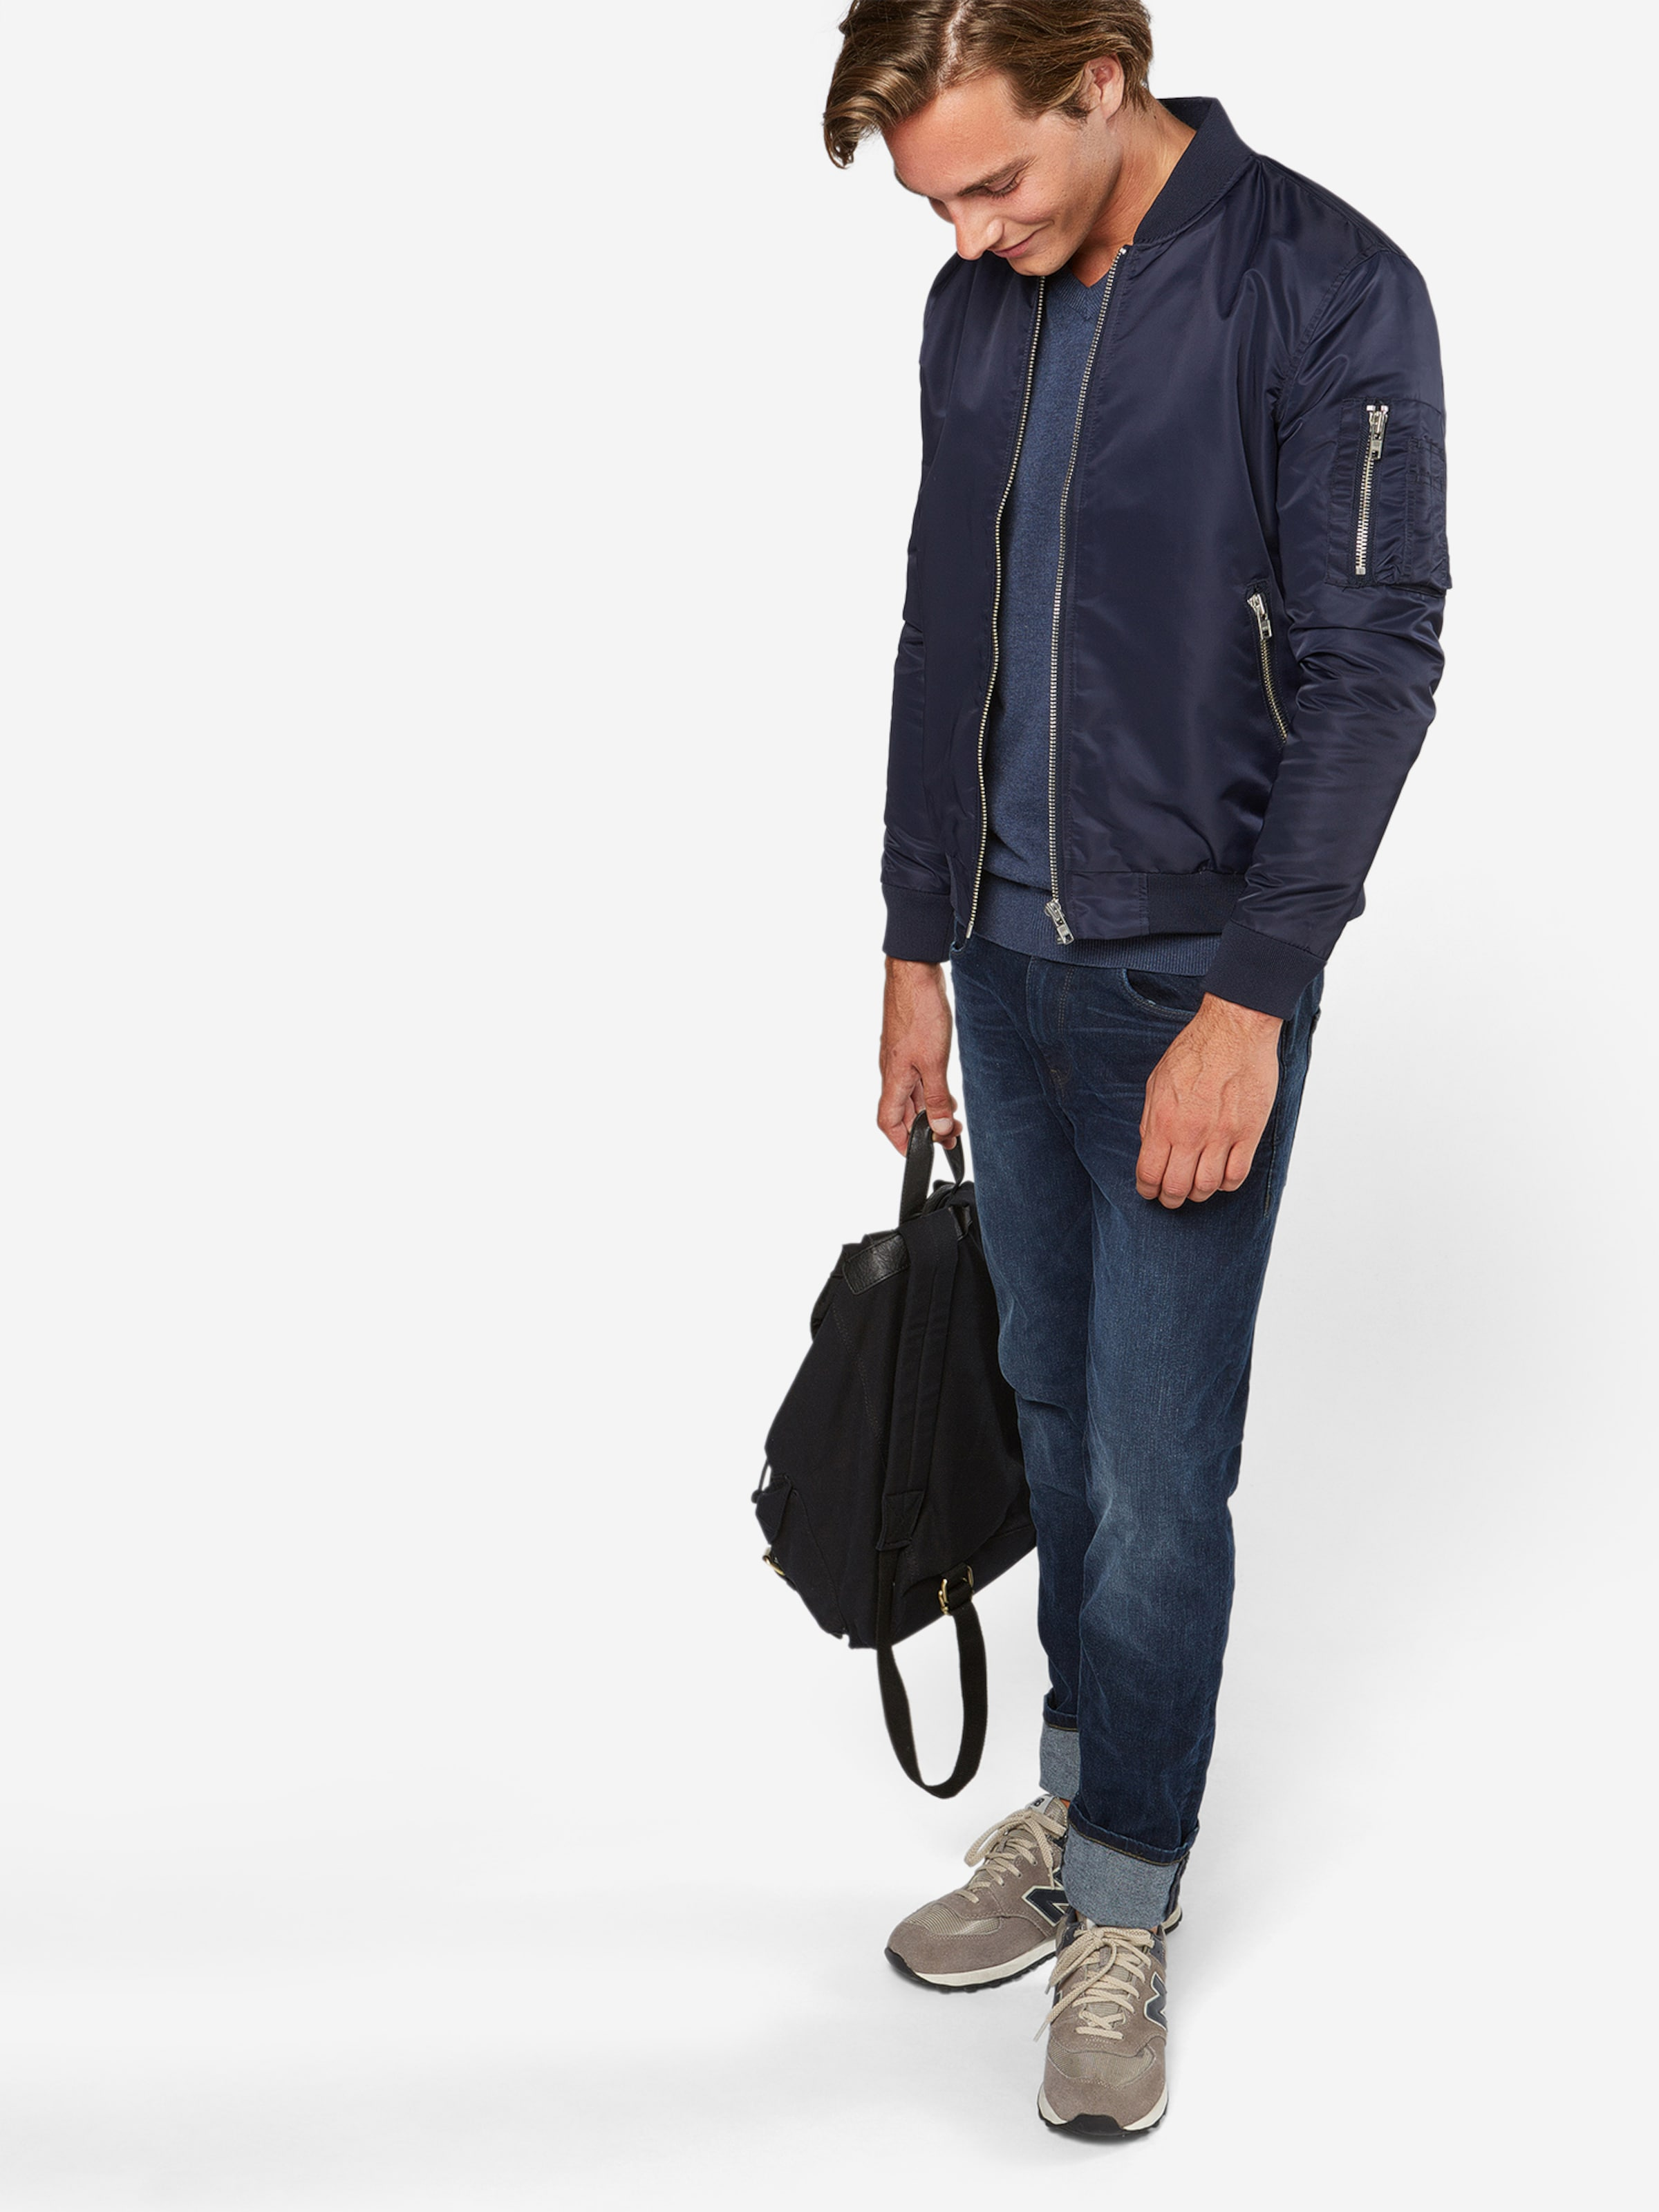 Esprit nk' Marine V Pull 'basic over Co En 7Yfbg6yv